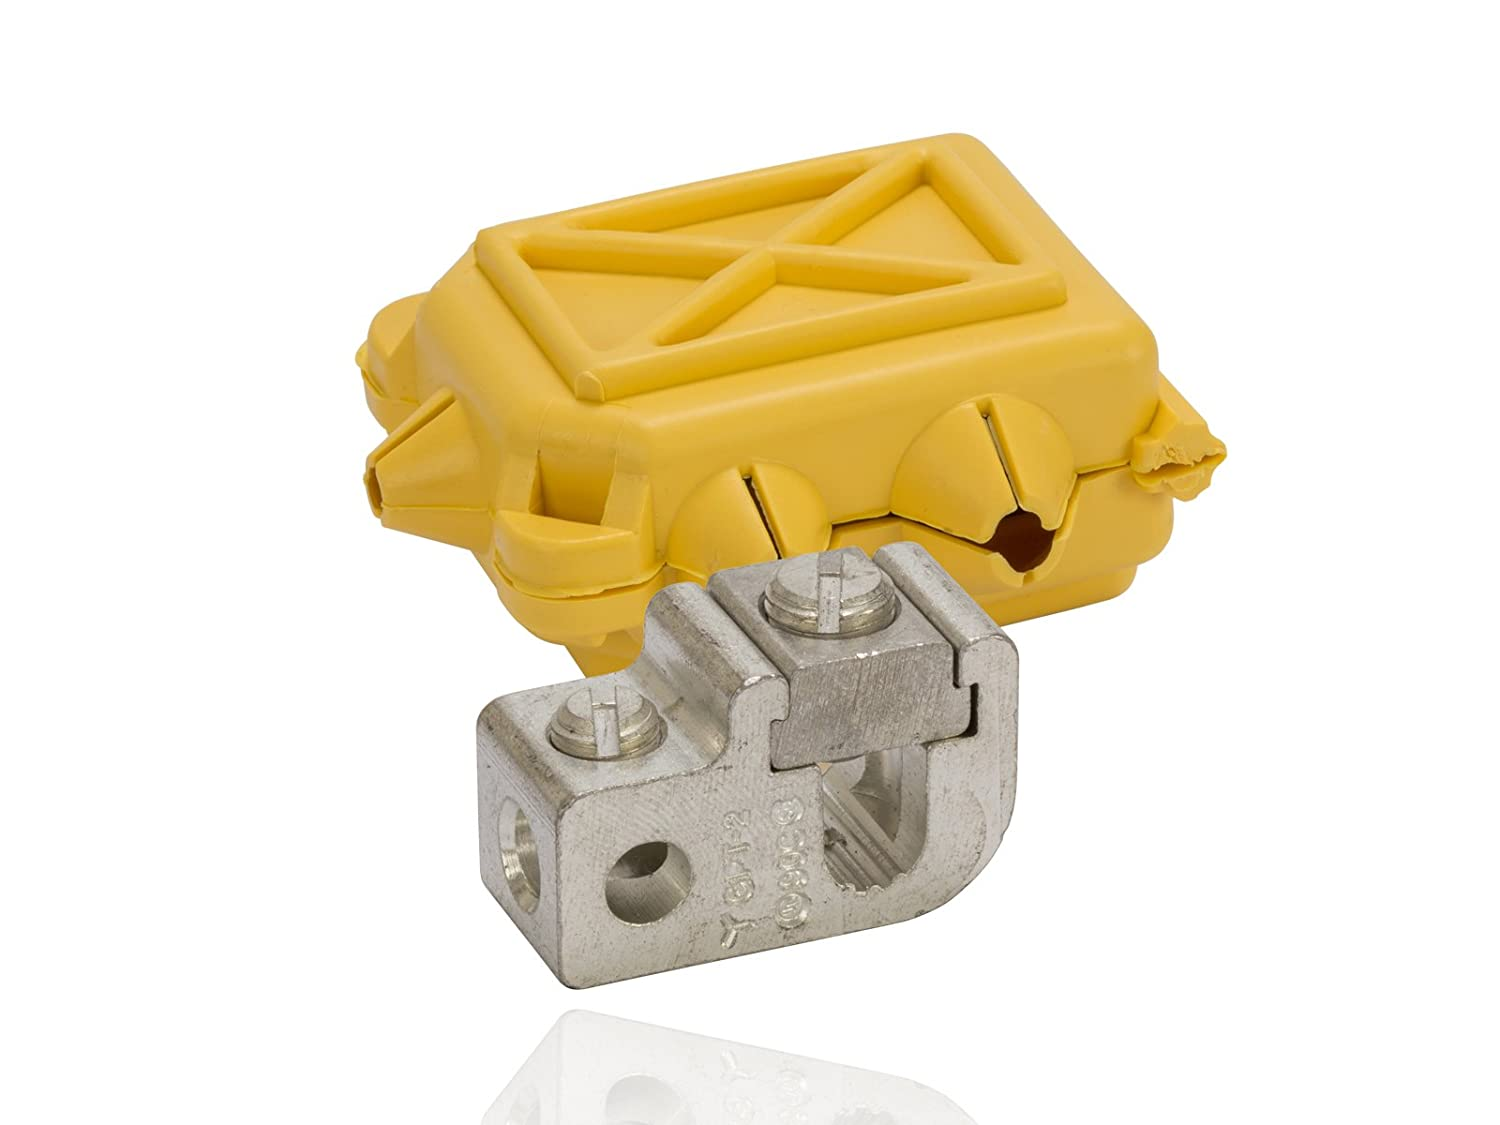 4-14 Tap Dual Rated Mechanical Tap Connector with Insulating Cover 1.375 Length 0.875 Height 0.625 Width 2-12 str Main